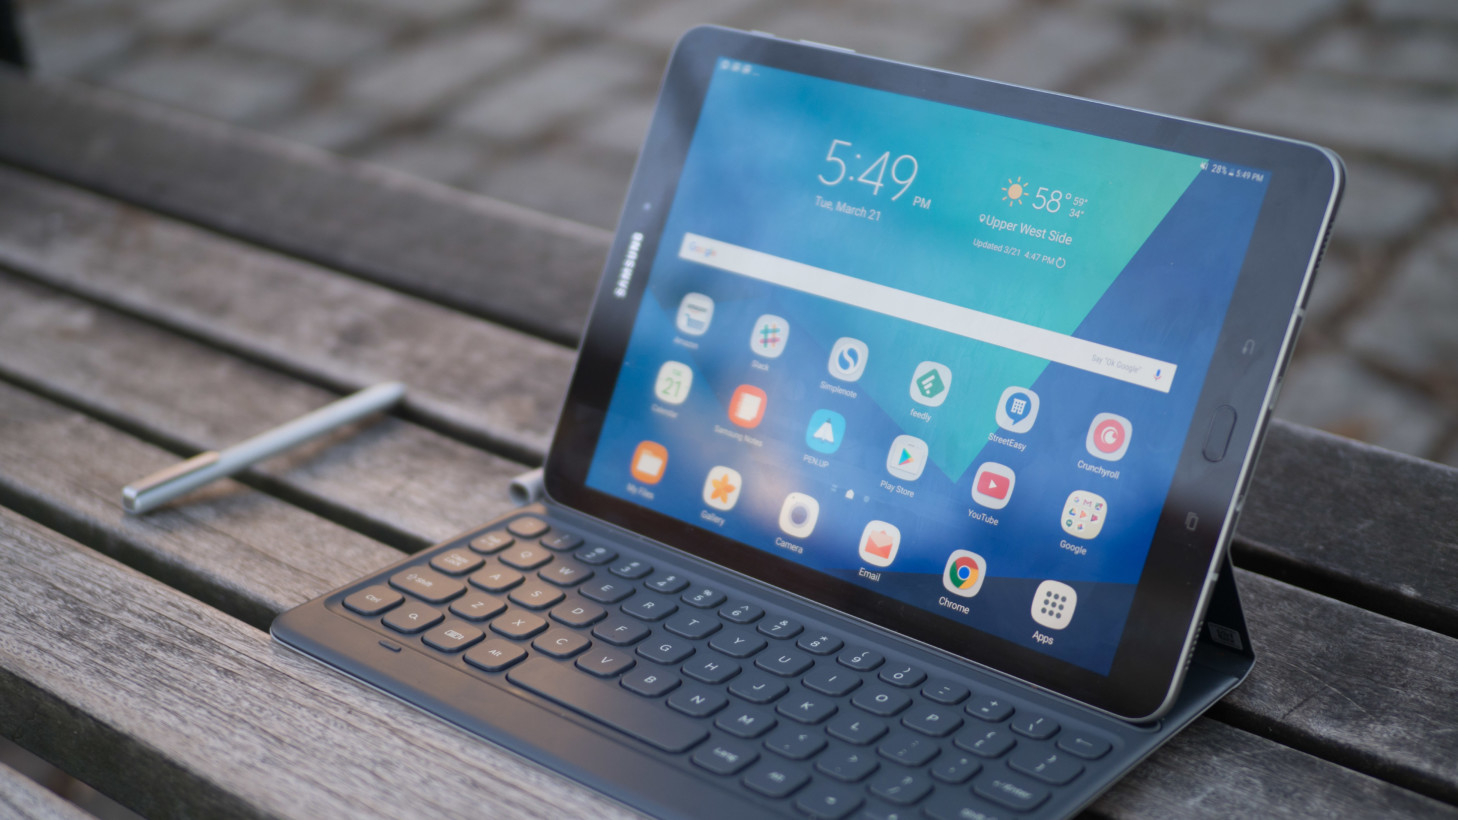 Review: The Samsung Galaxy Tab S3 is a premium (if flawed